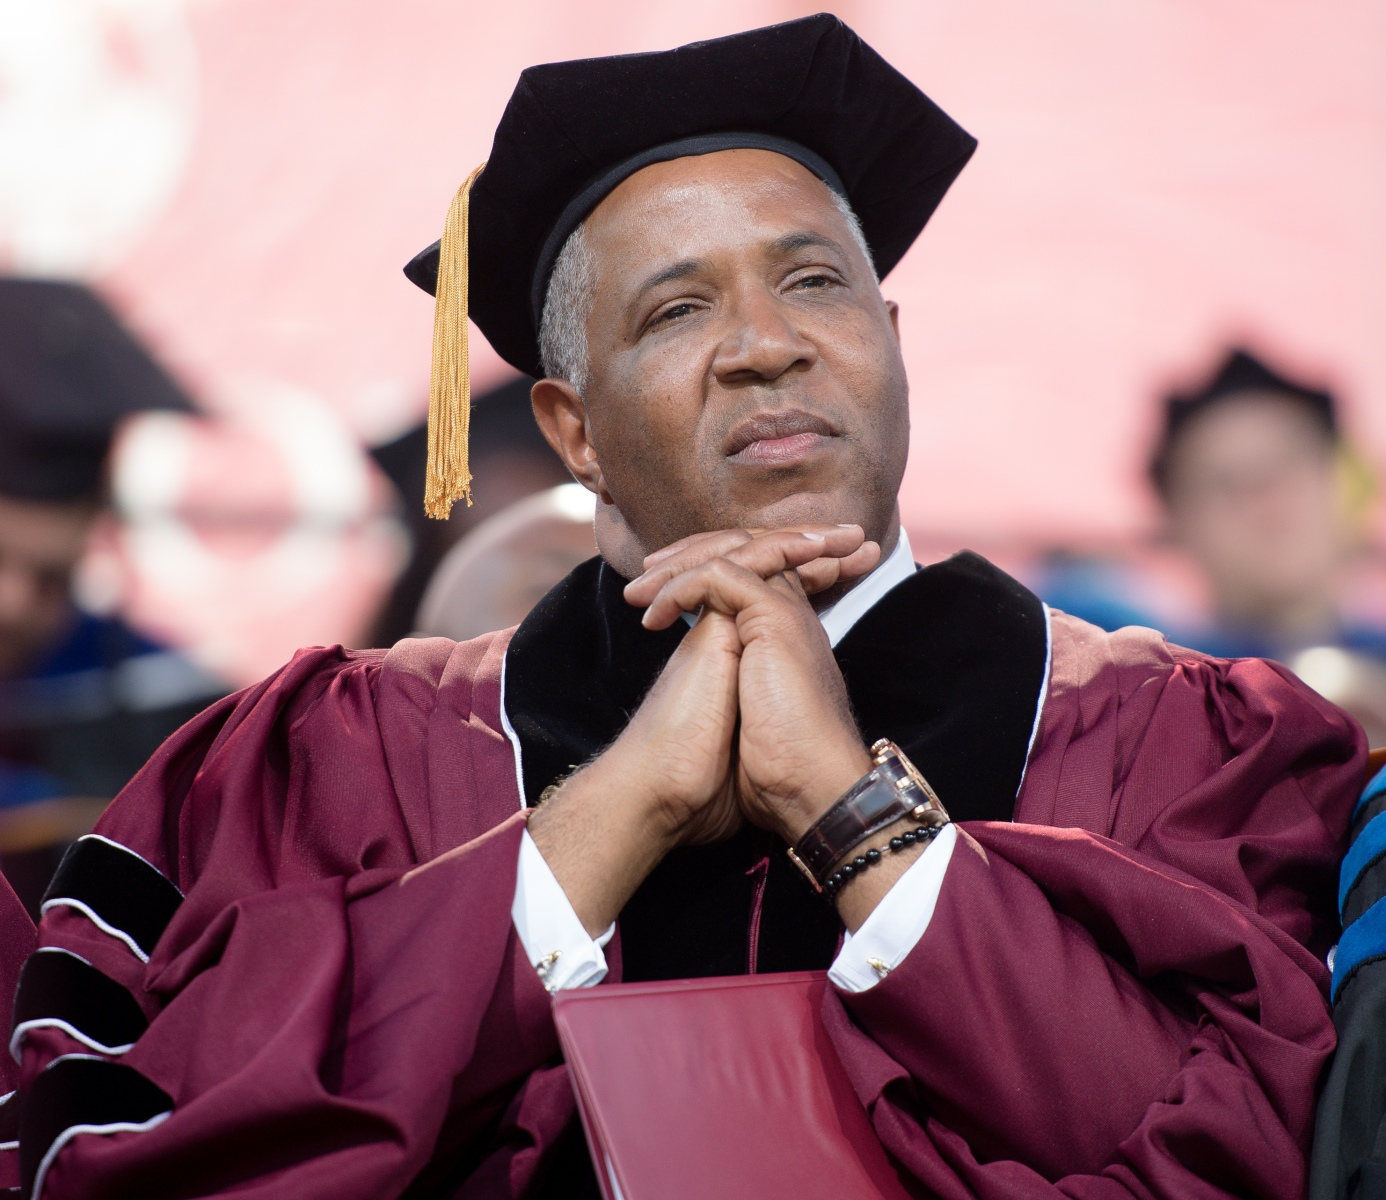 Robert F. Smith paid off the student loans of all the Morehouse College grads. (Photo by Marcus Ingram/Getty Images)